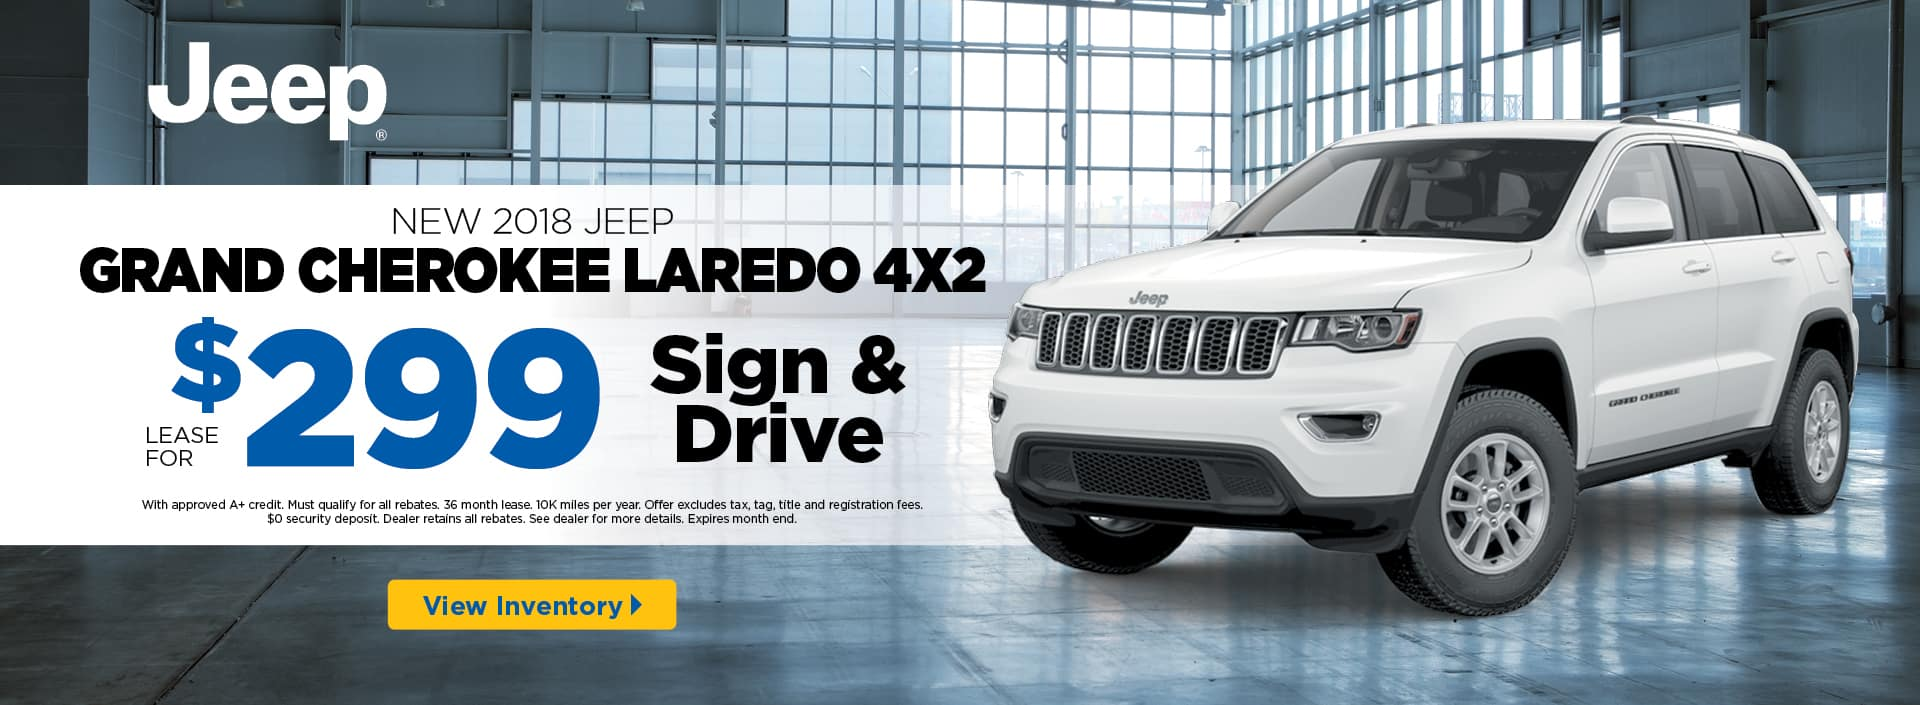 2018 Jeep Grand Cherokee Lardeo